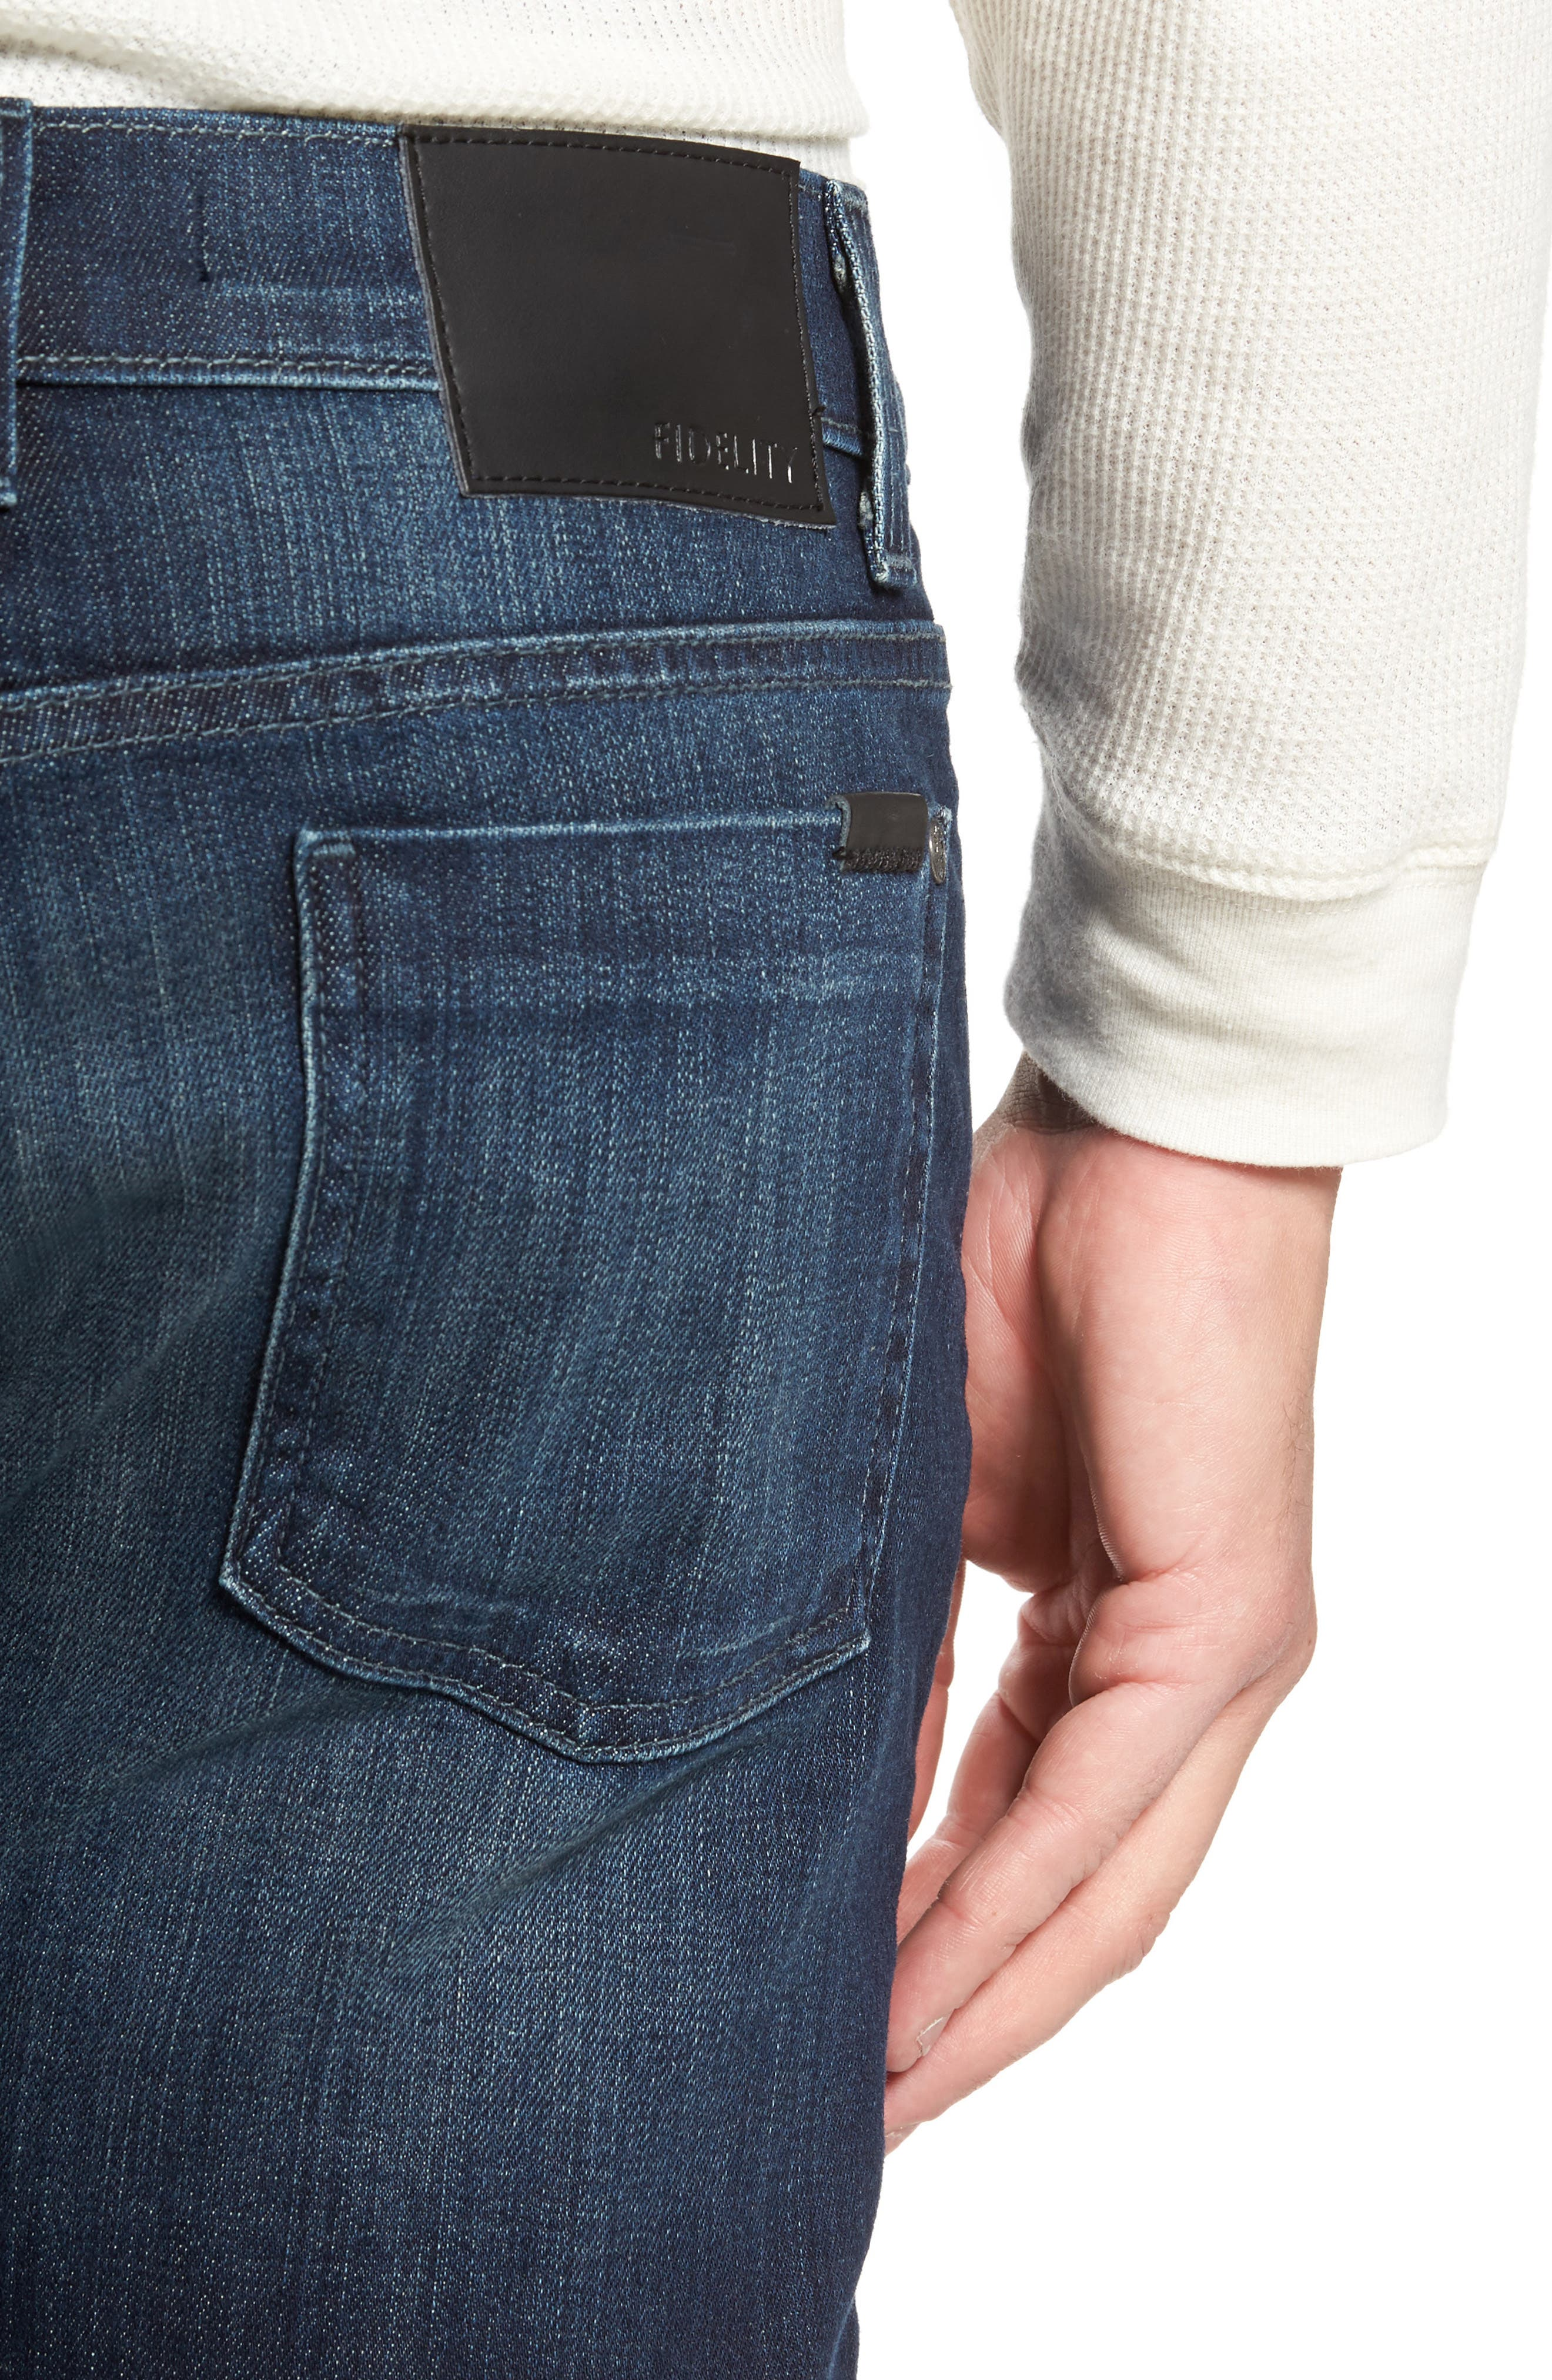 50-11 Relaxed Fit Jeans,                             Alternate thumbnail 4, color,                             400